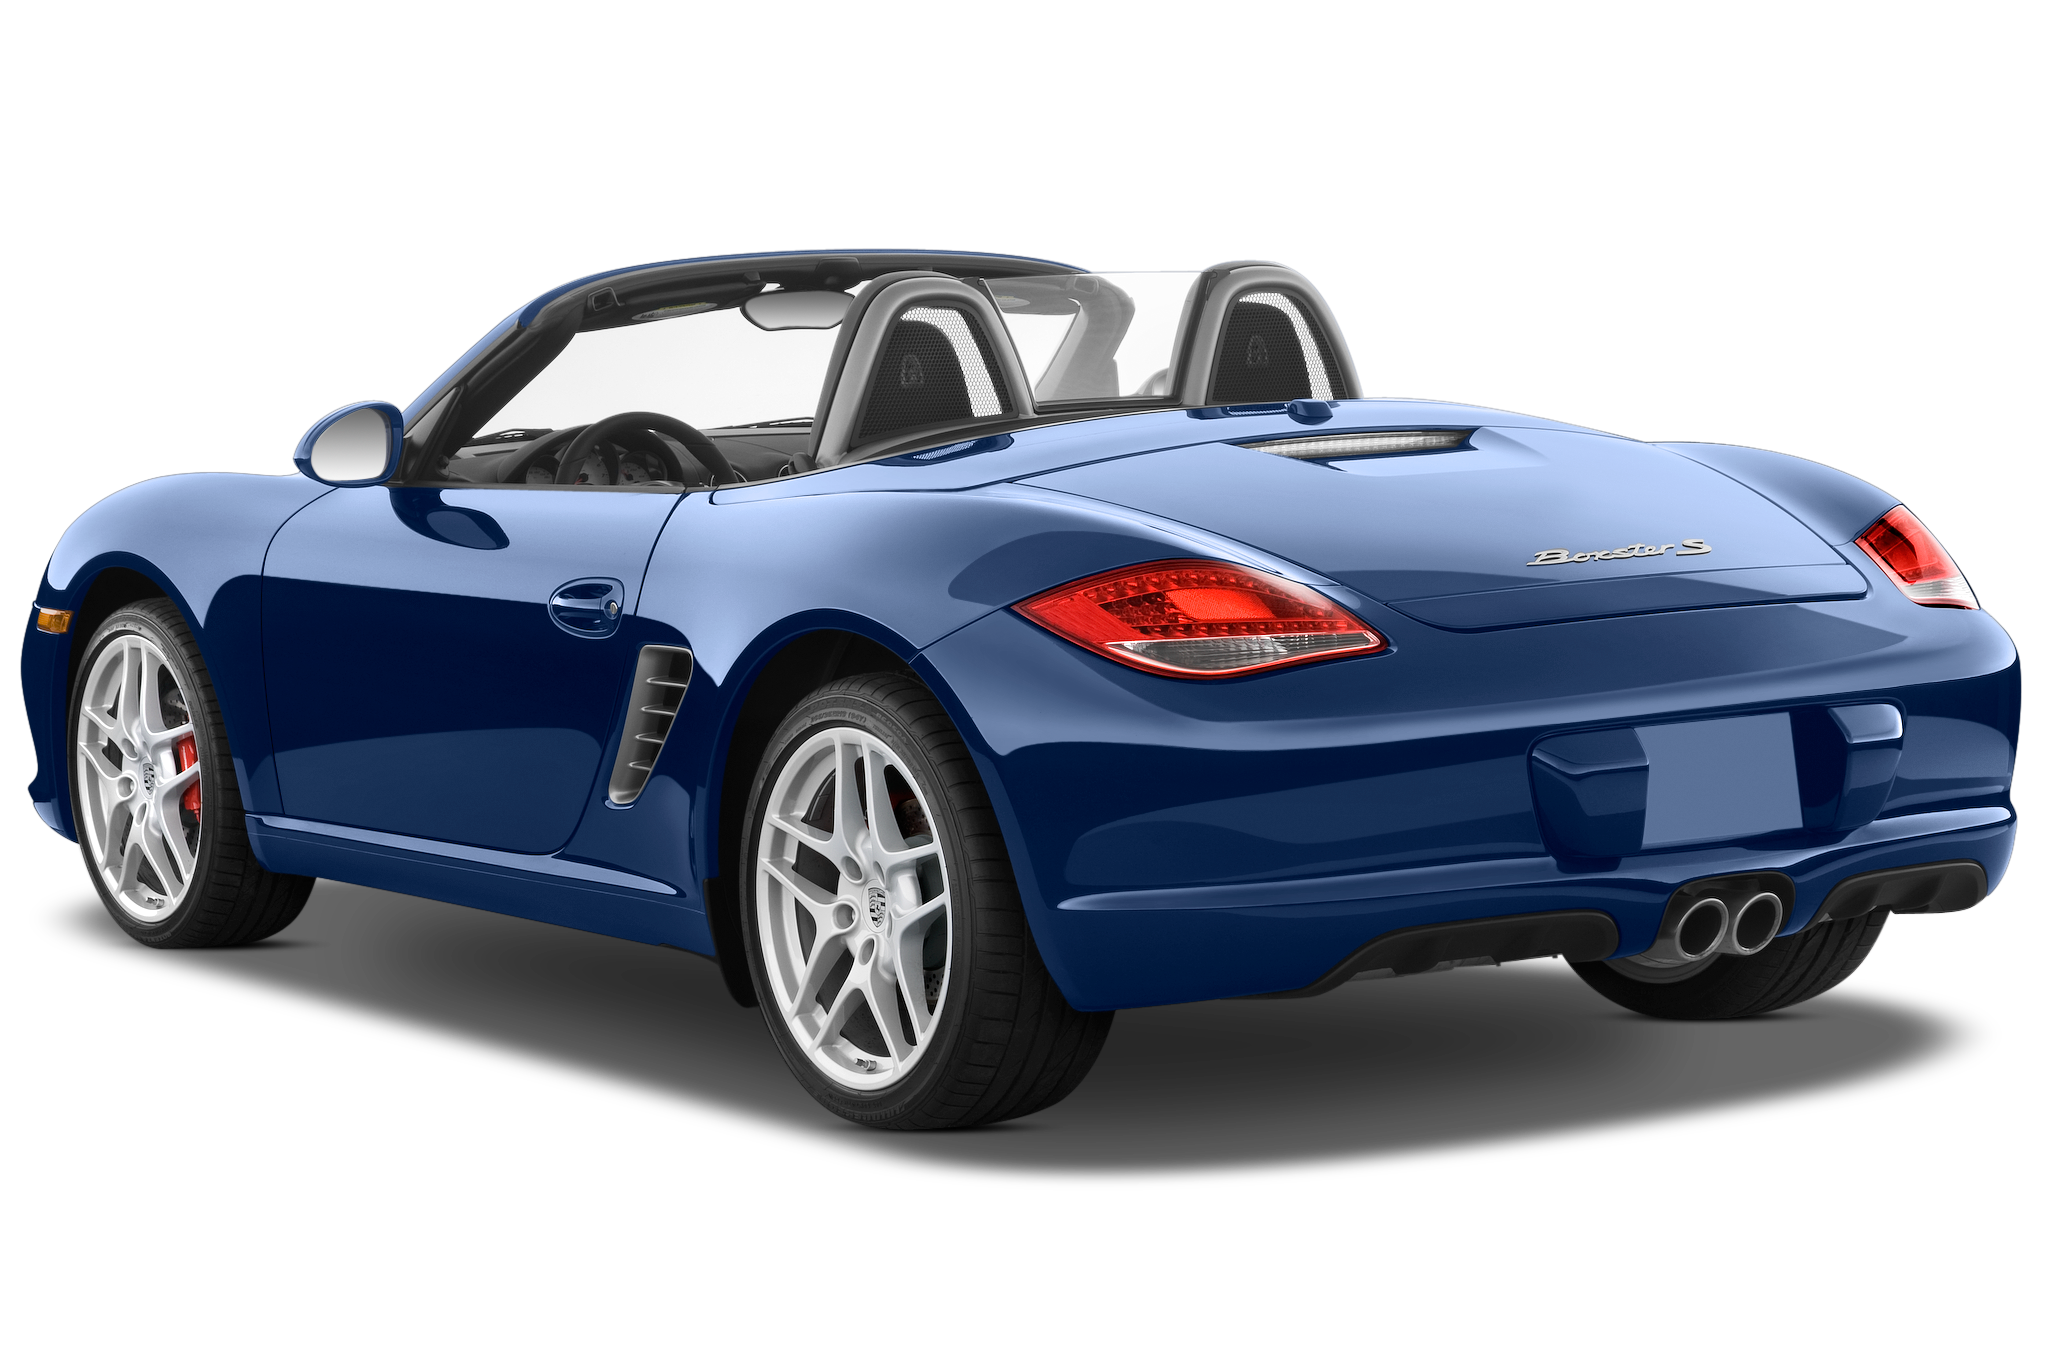 Porsche Boxster II (987) Restyling 2 2009 - 2012 Roadster #6